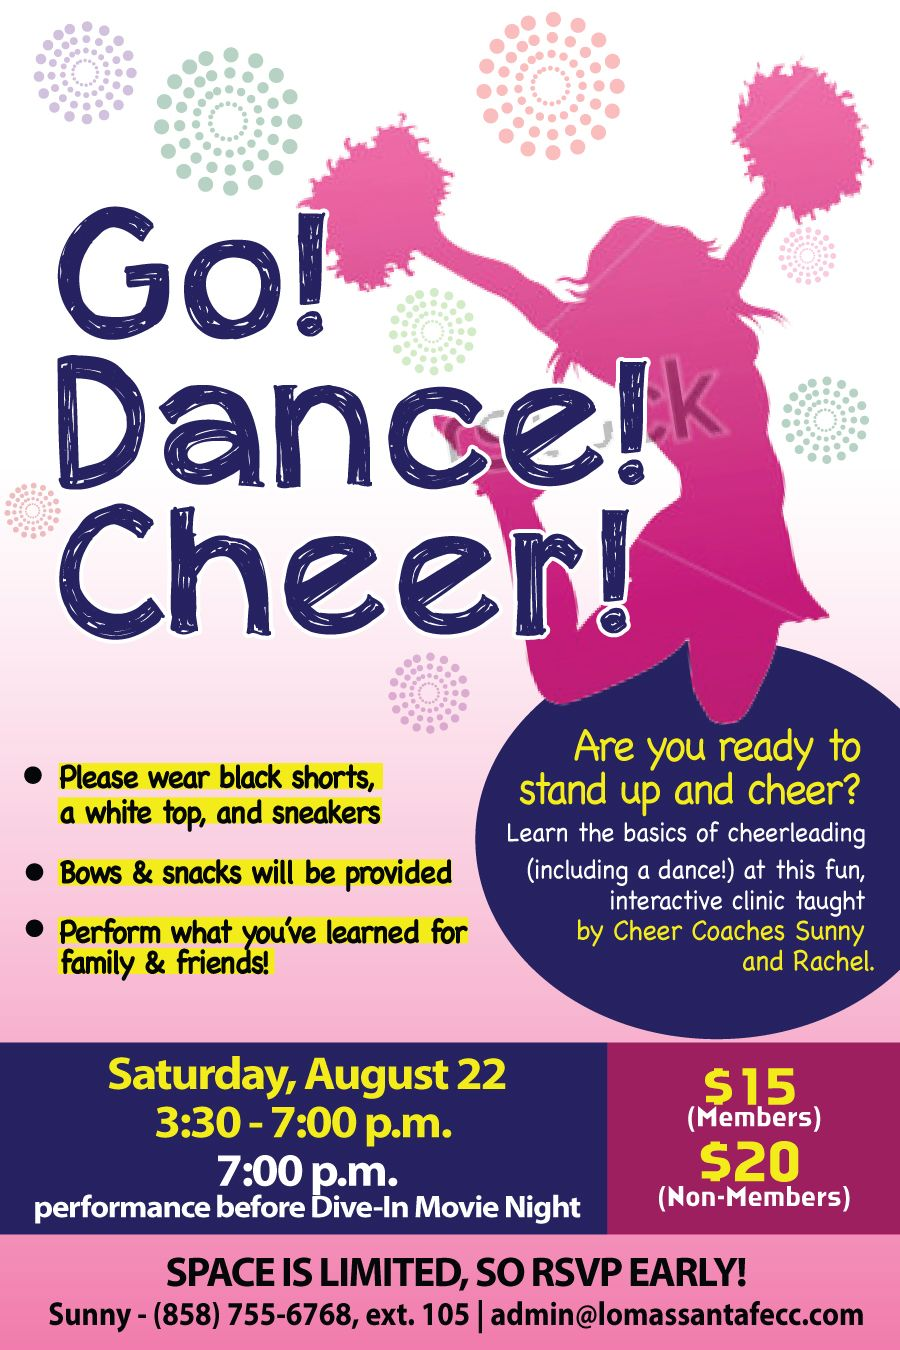 Cheer Clinic Flyer Poster Design Template